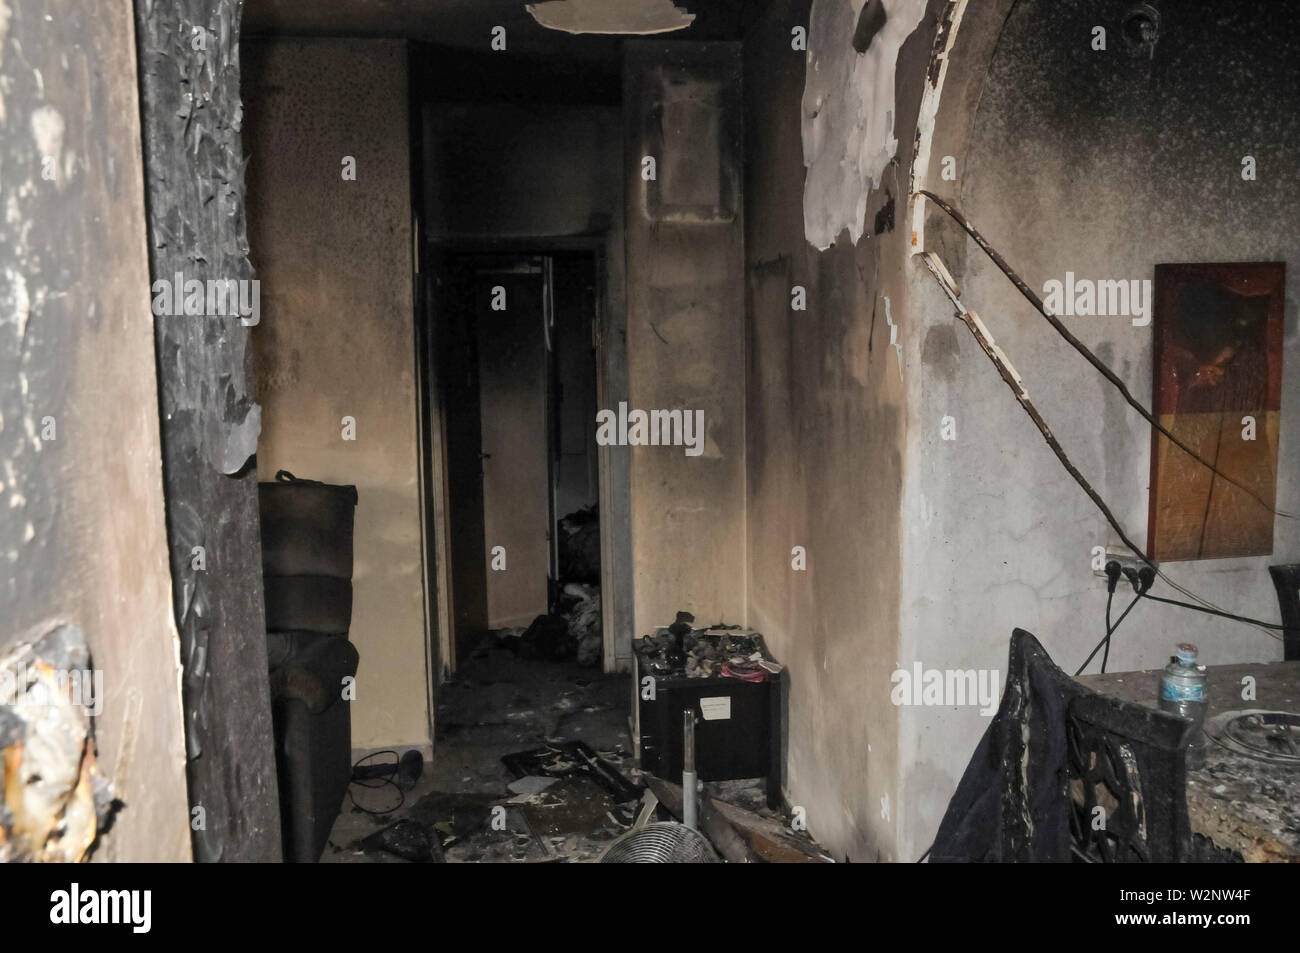 On May 23 2019, a forest fire devastated the village of Mevo Modiim, Israel. Interior of a burnt home - Stock Image